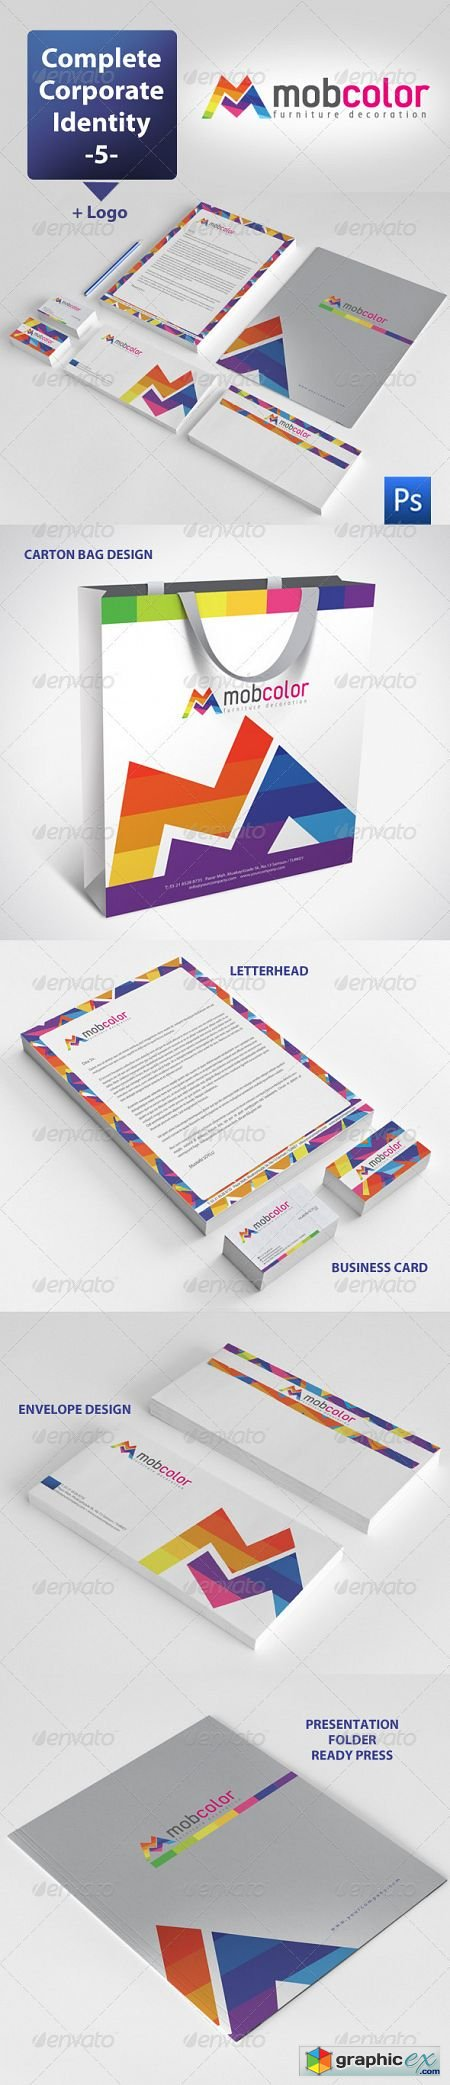 Mobcolor Corporate Identity Package